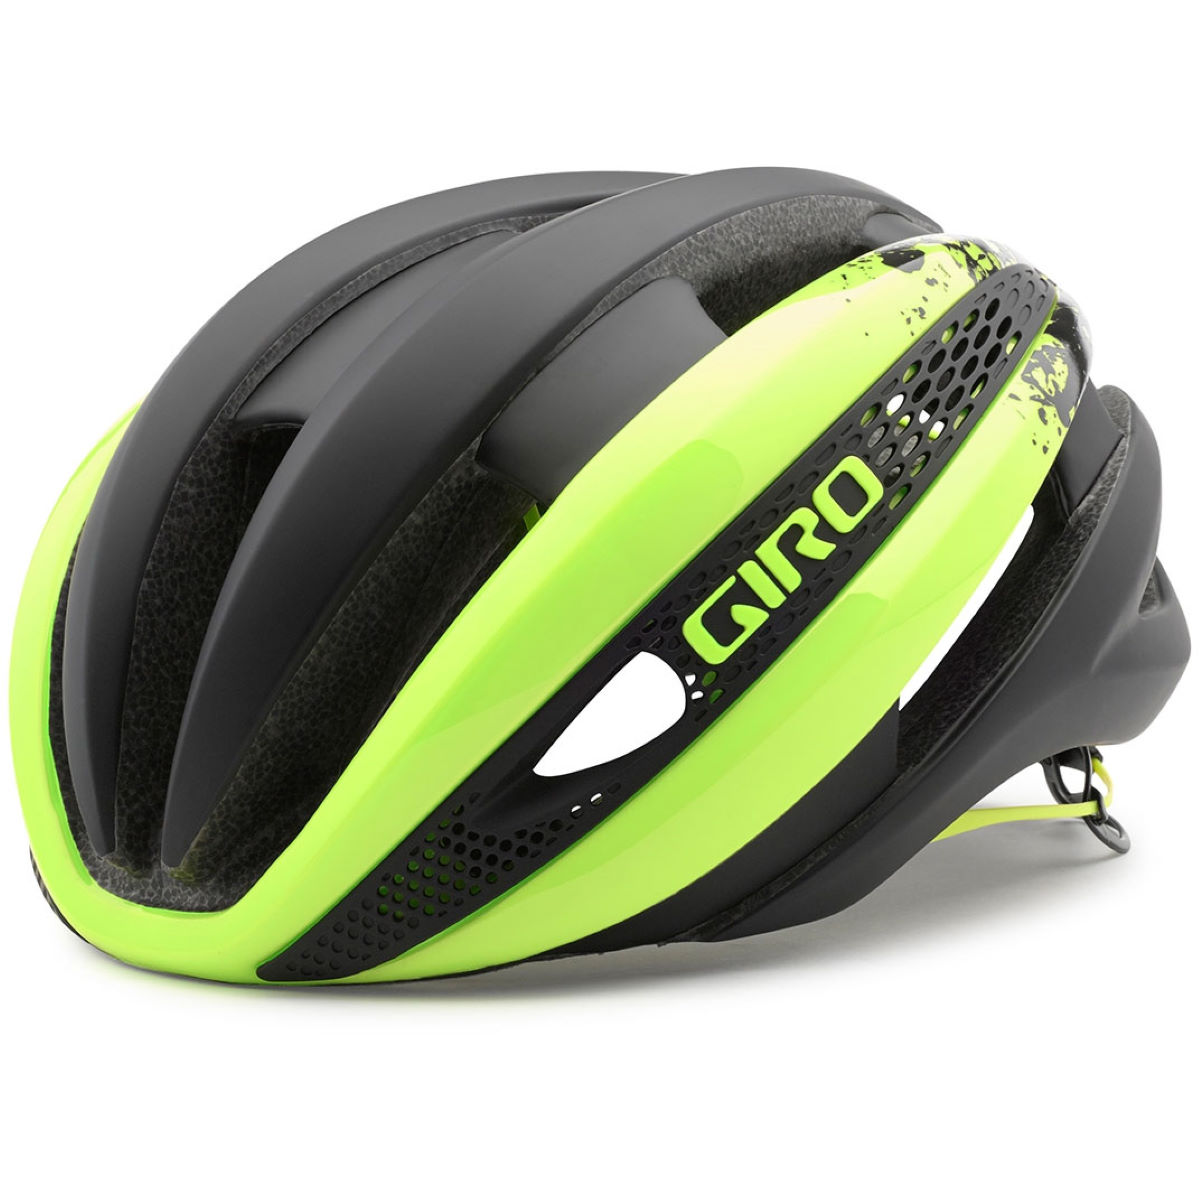 Casque Giro Synthe (2015) - Small 51-55cm Yellow/Matt Black Casques de route